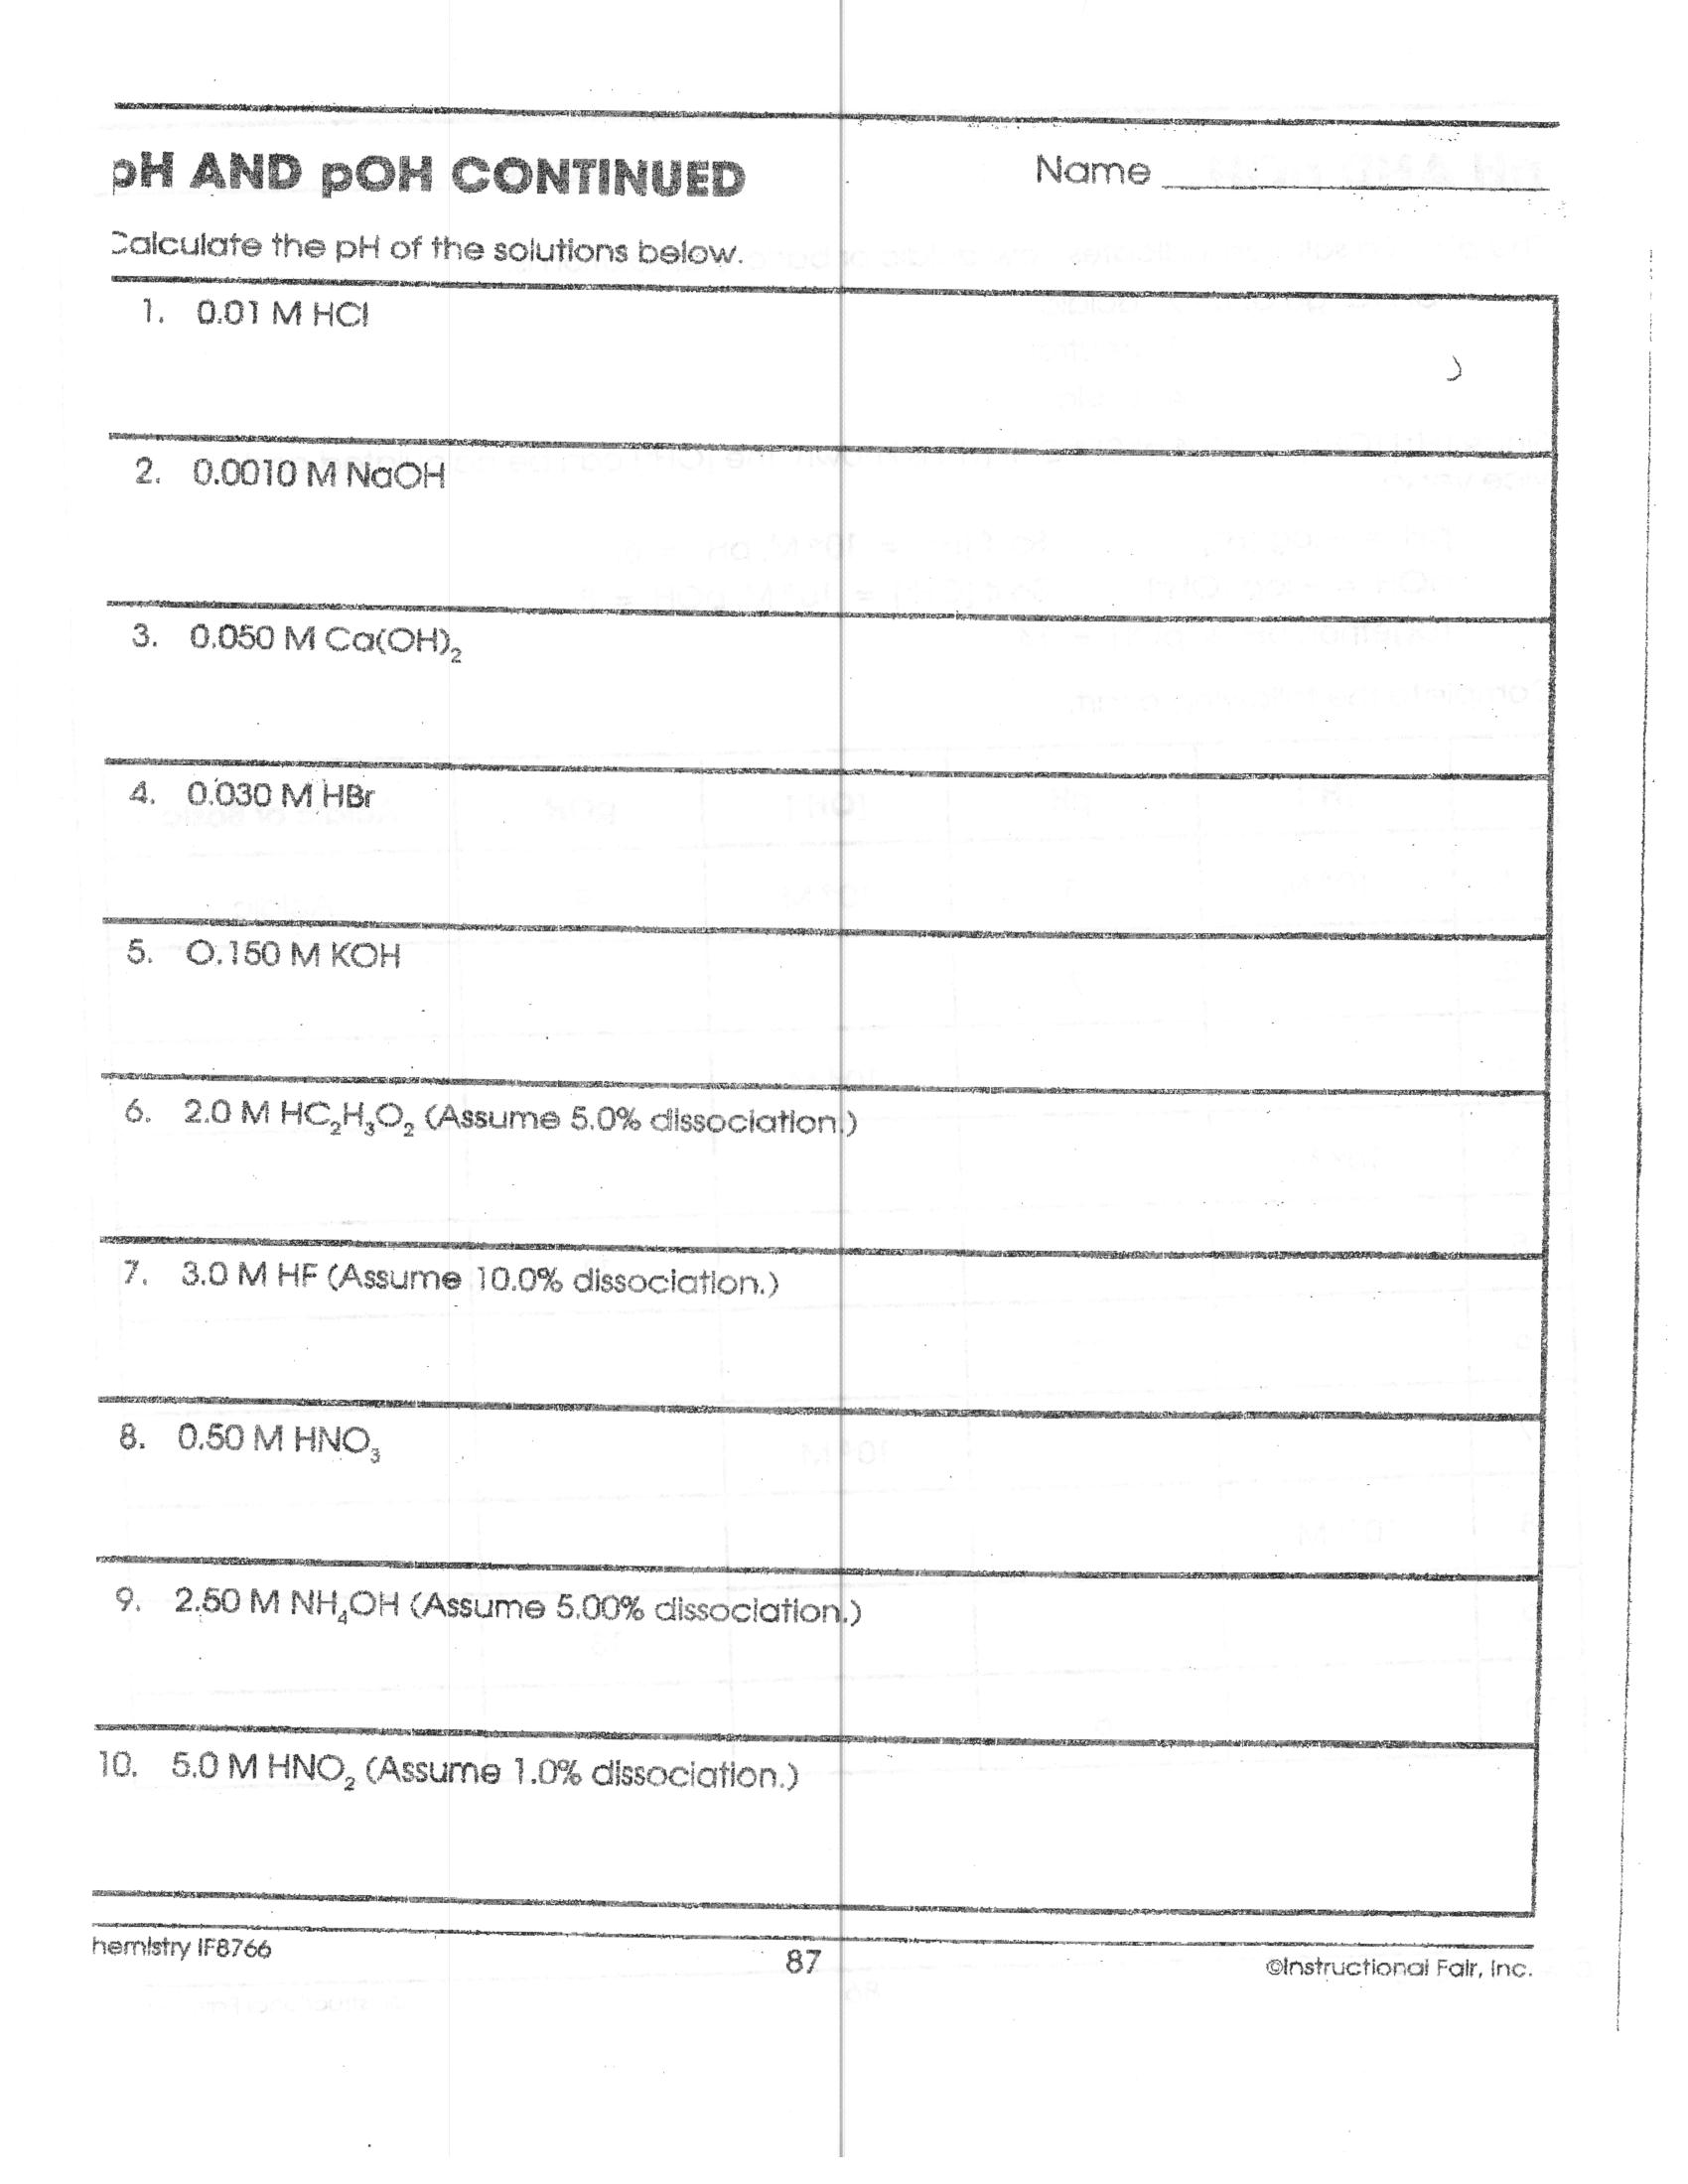 Worksheet Acid And Base Worksheet acid base worksheet high school delwfg com ph and poh jpeg